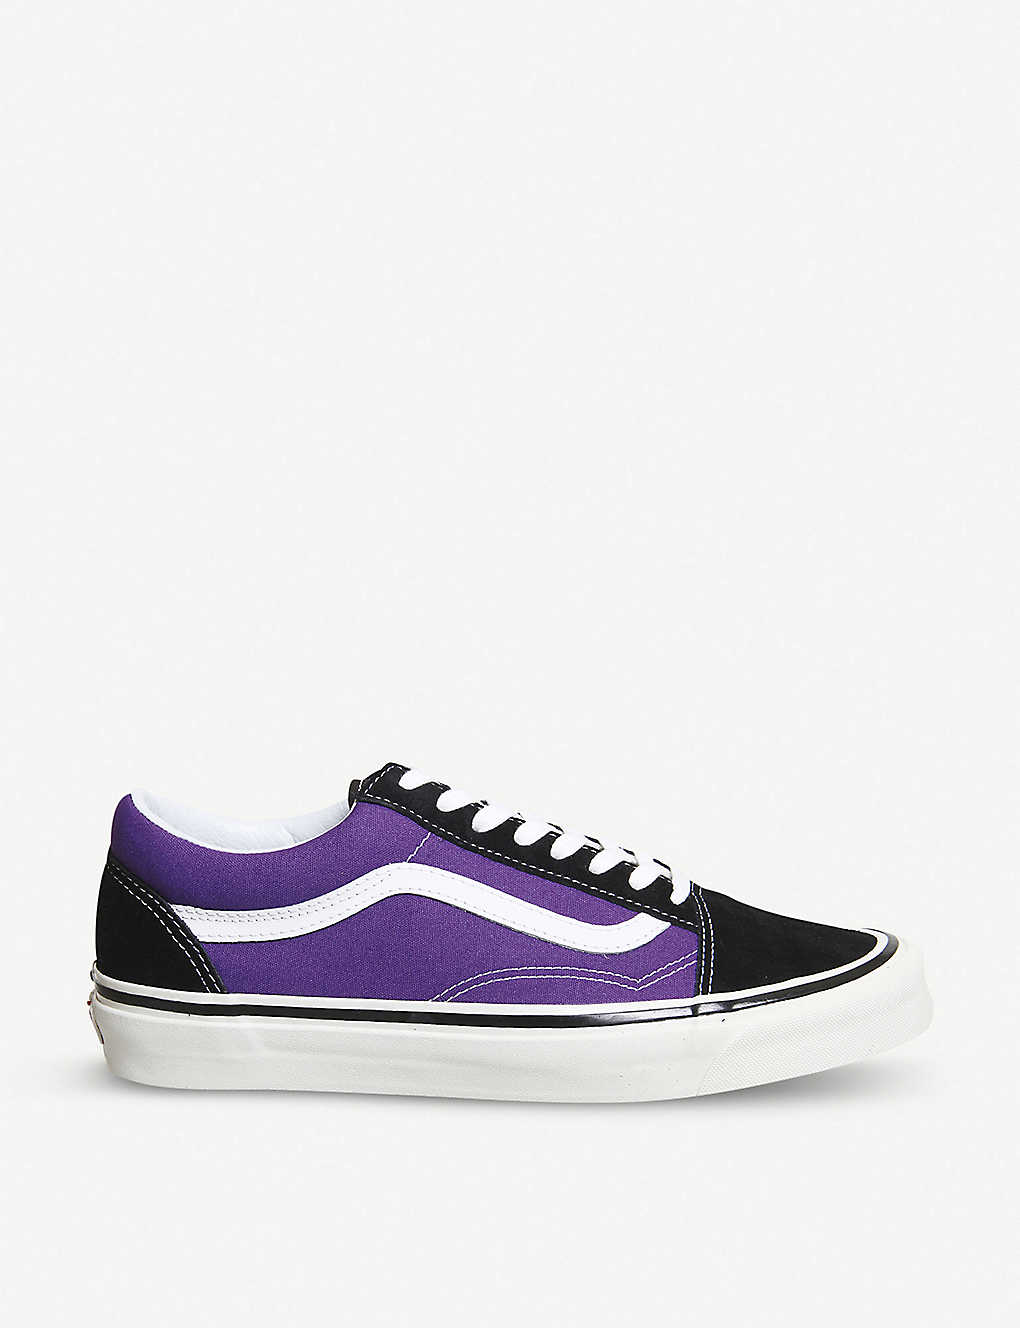 VANS - Old Skool 38 Dx suede and canvas trainers  5be17c901